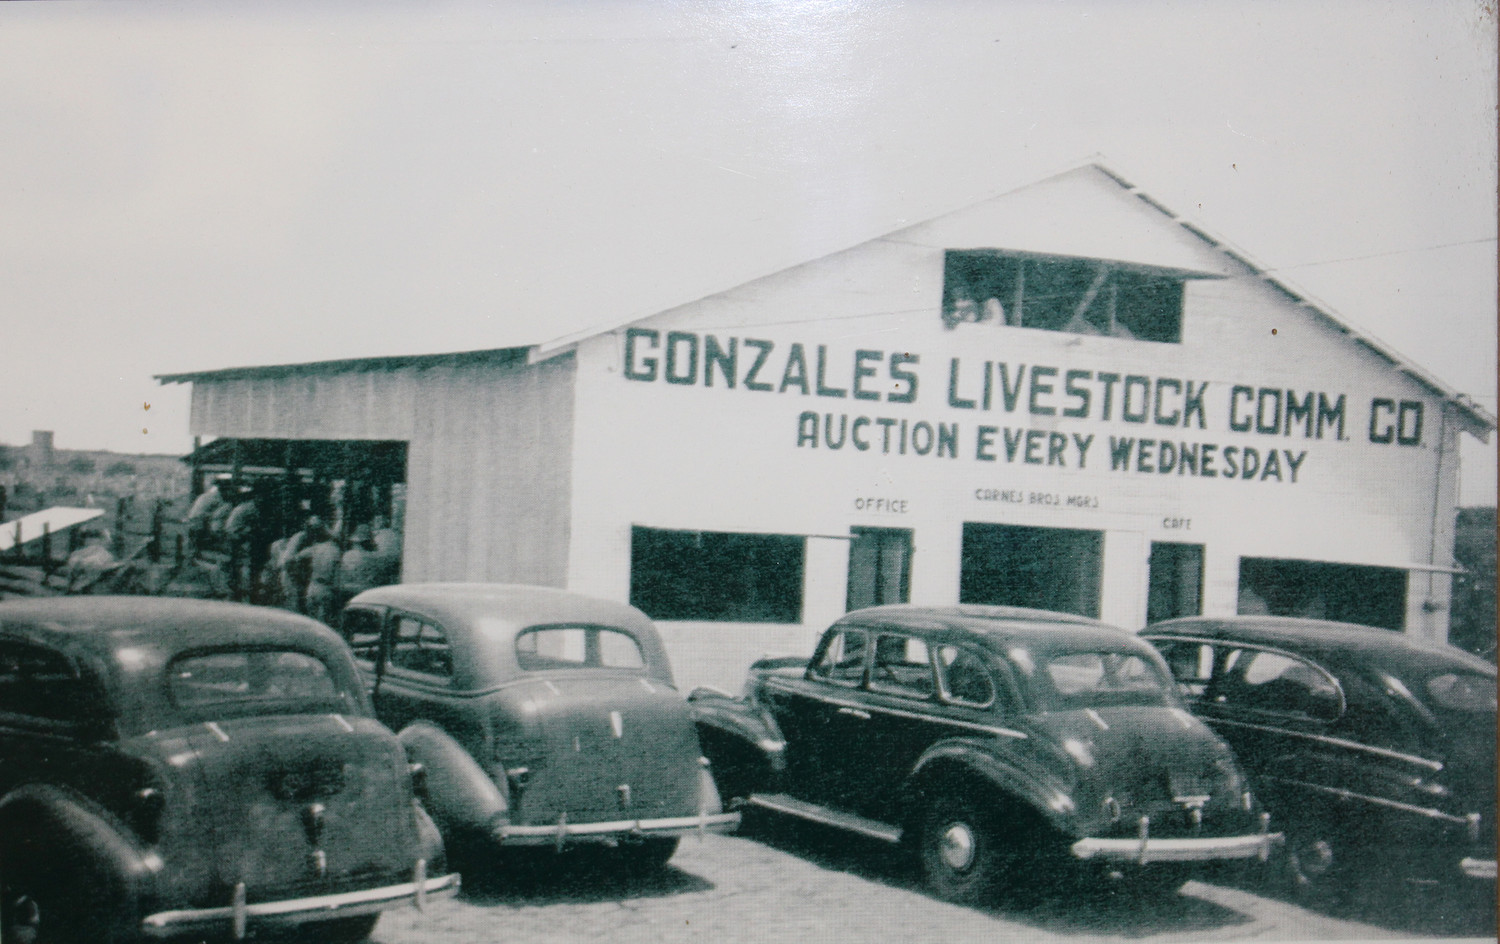 The original auction house was opened in 1940. Here is a picture of the operation circa 1940.